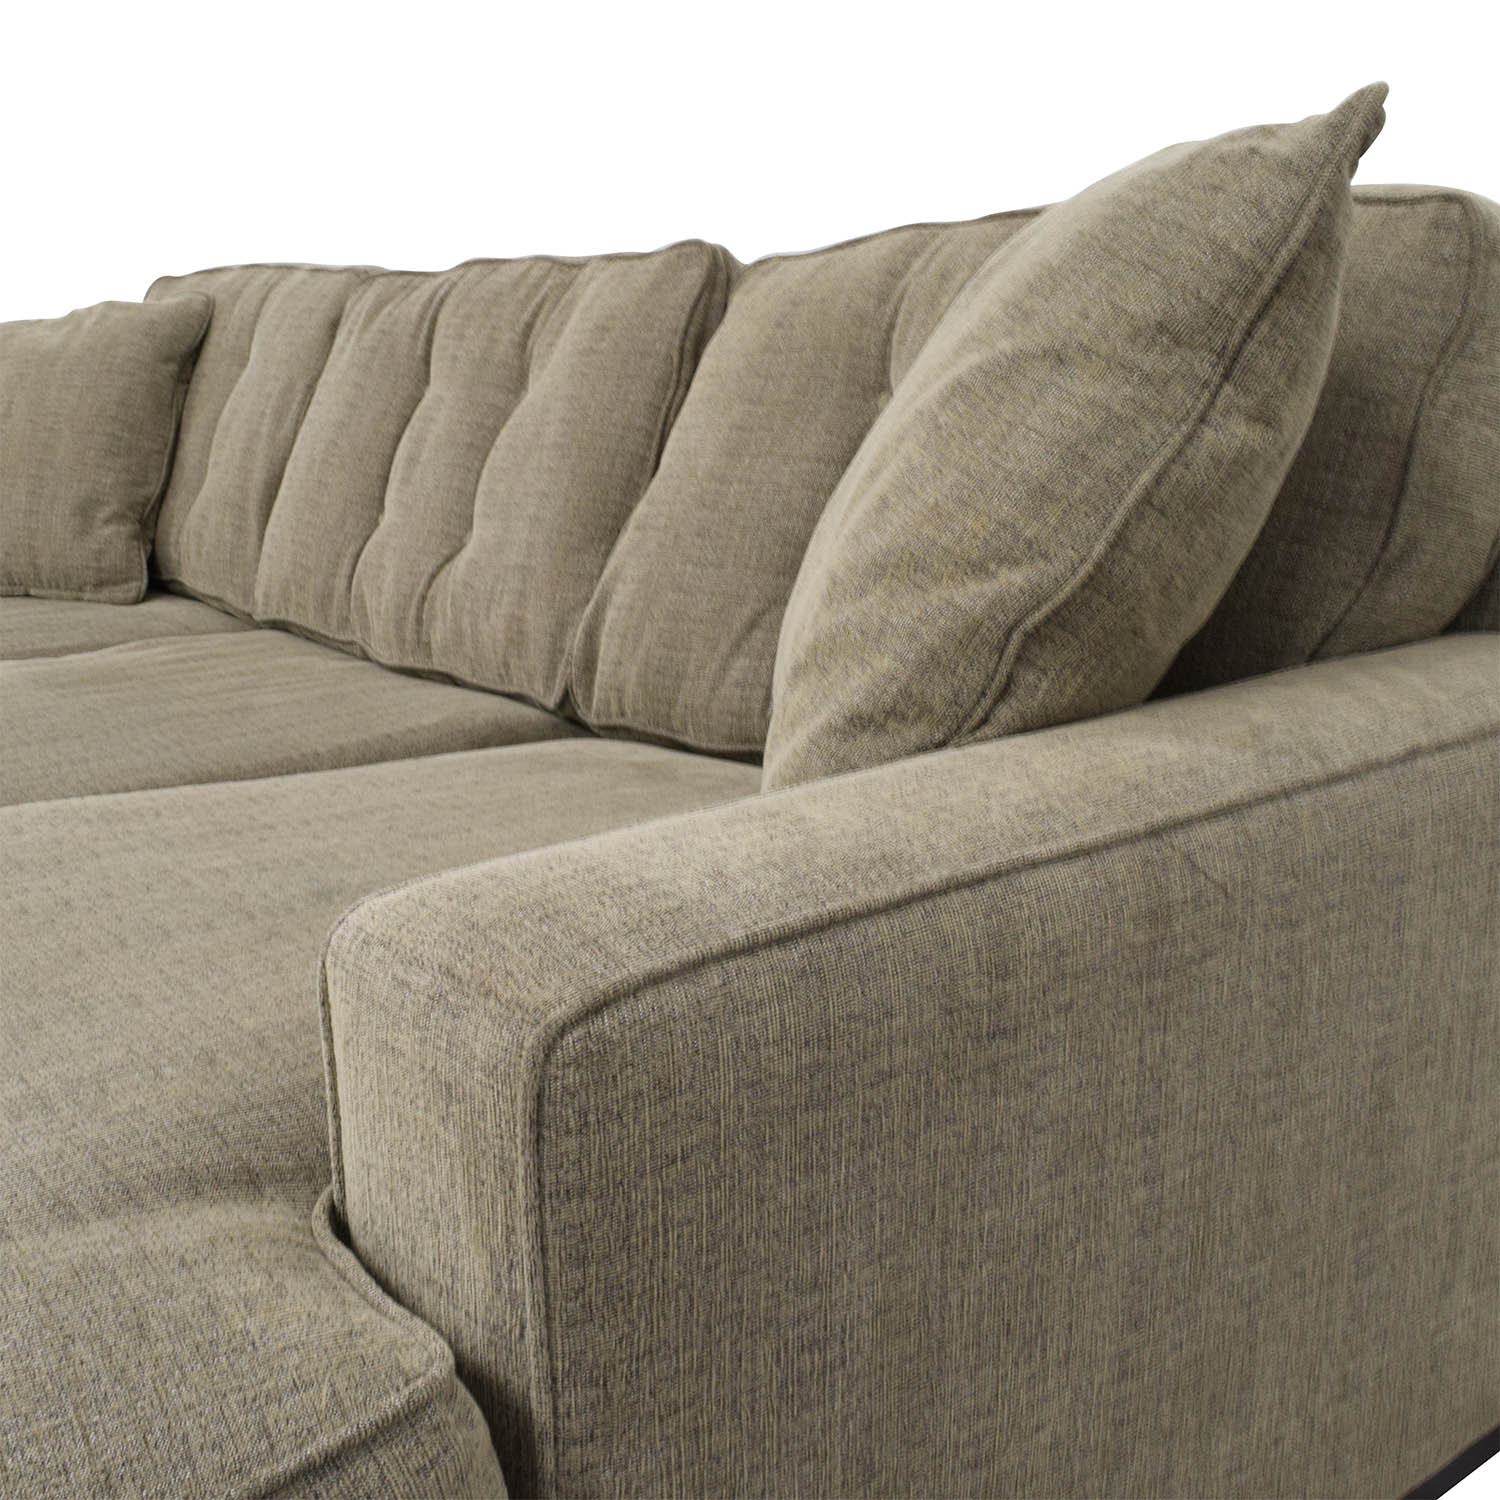 61 OFF  Grey LShaped Tufted Sectional with Right Chaise  Sofas